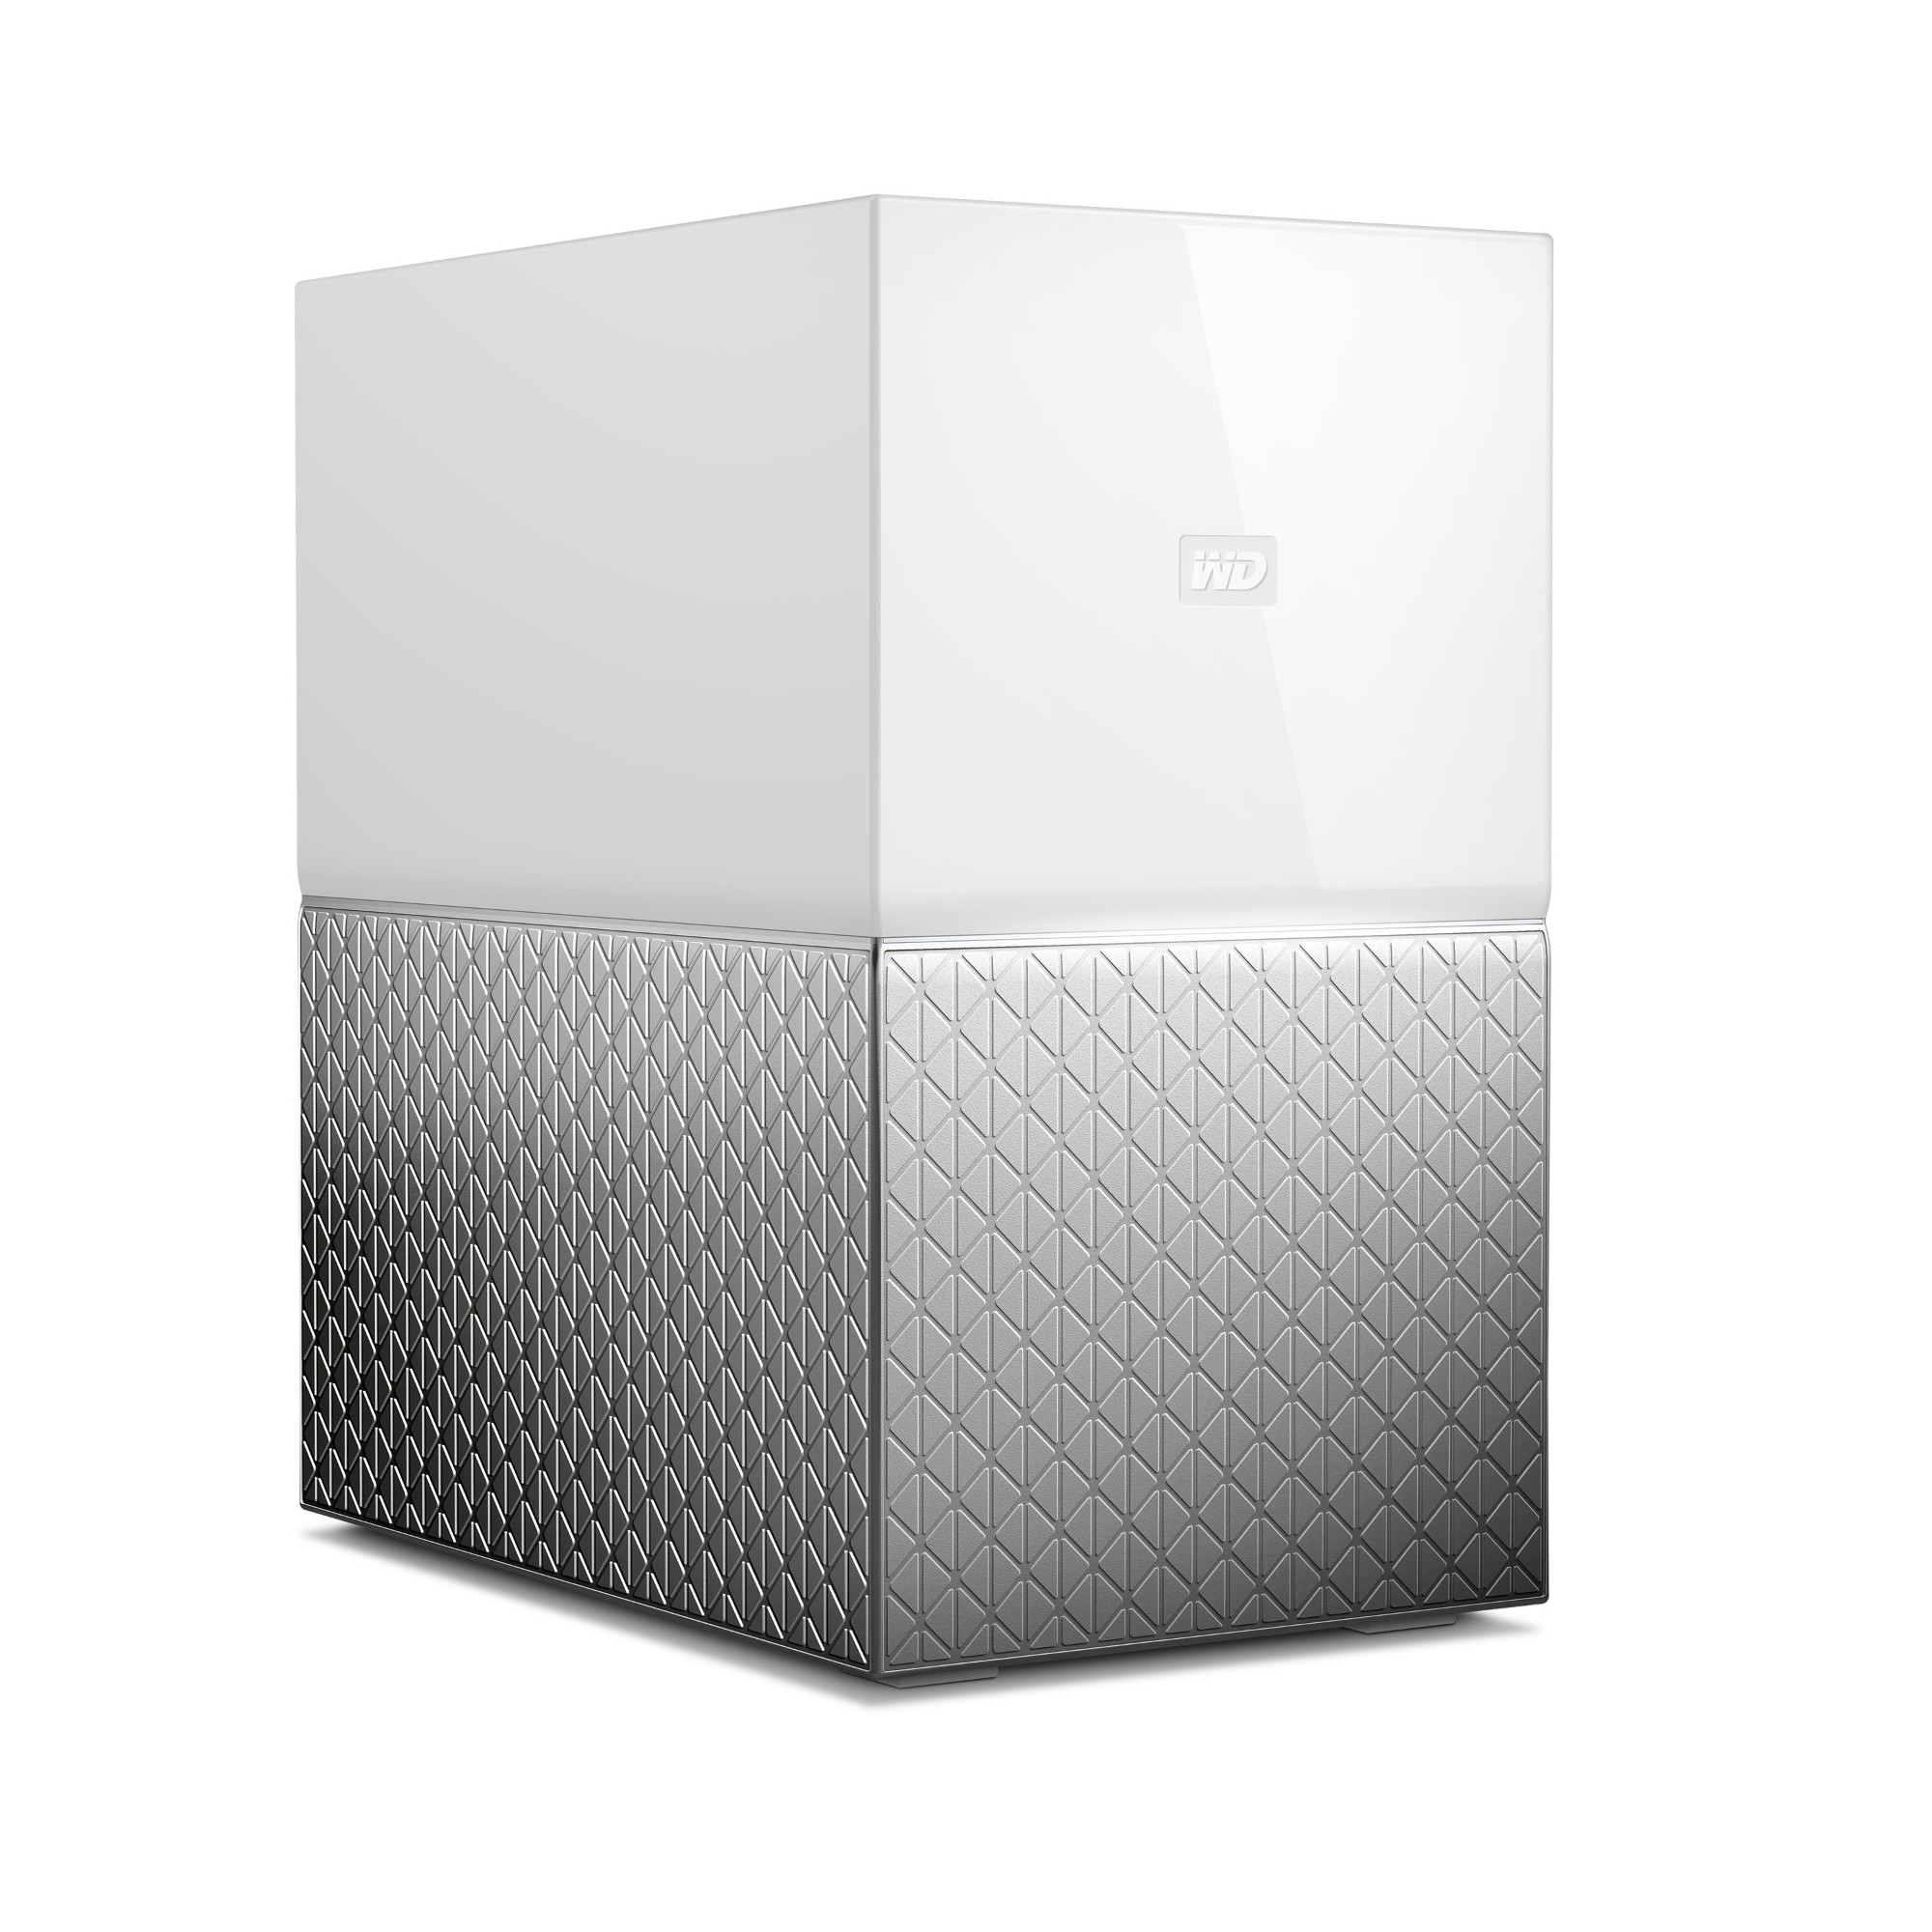 Western Digital My Cloud Home Duo personal cloud storage device 20 TB Ethernet LAN White